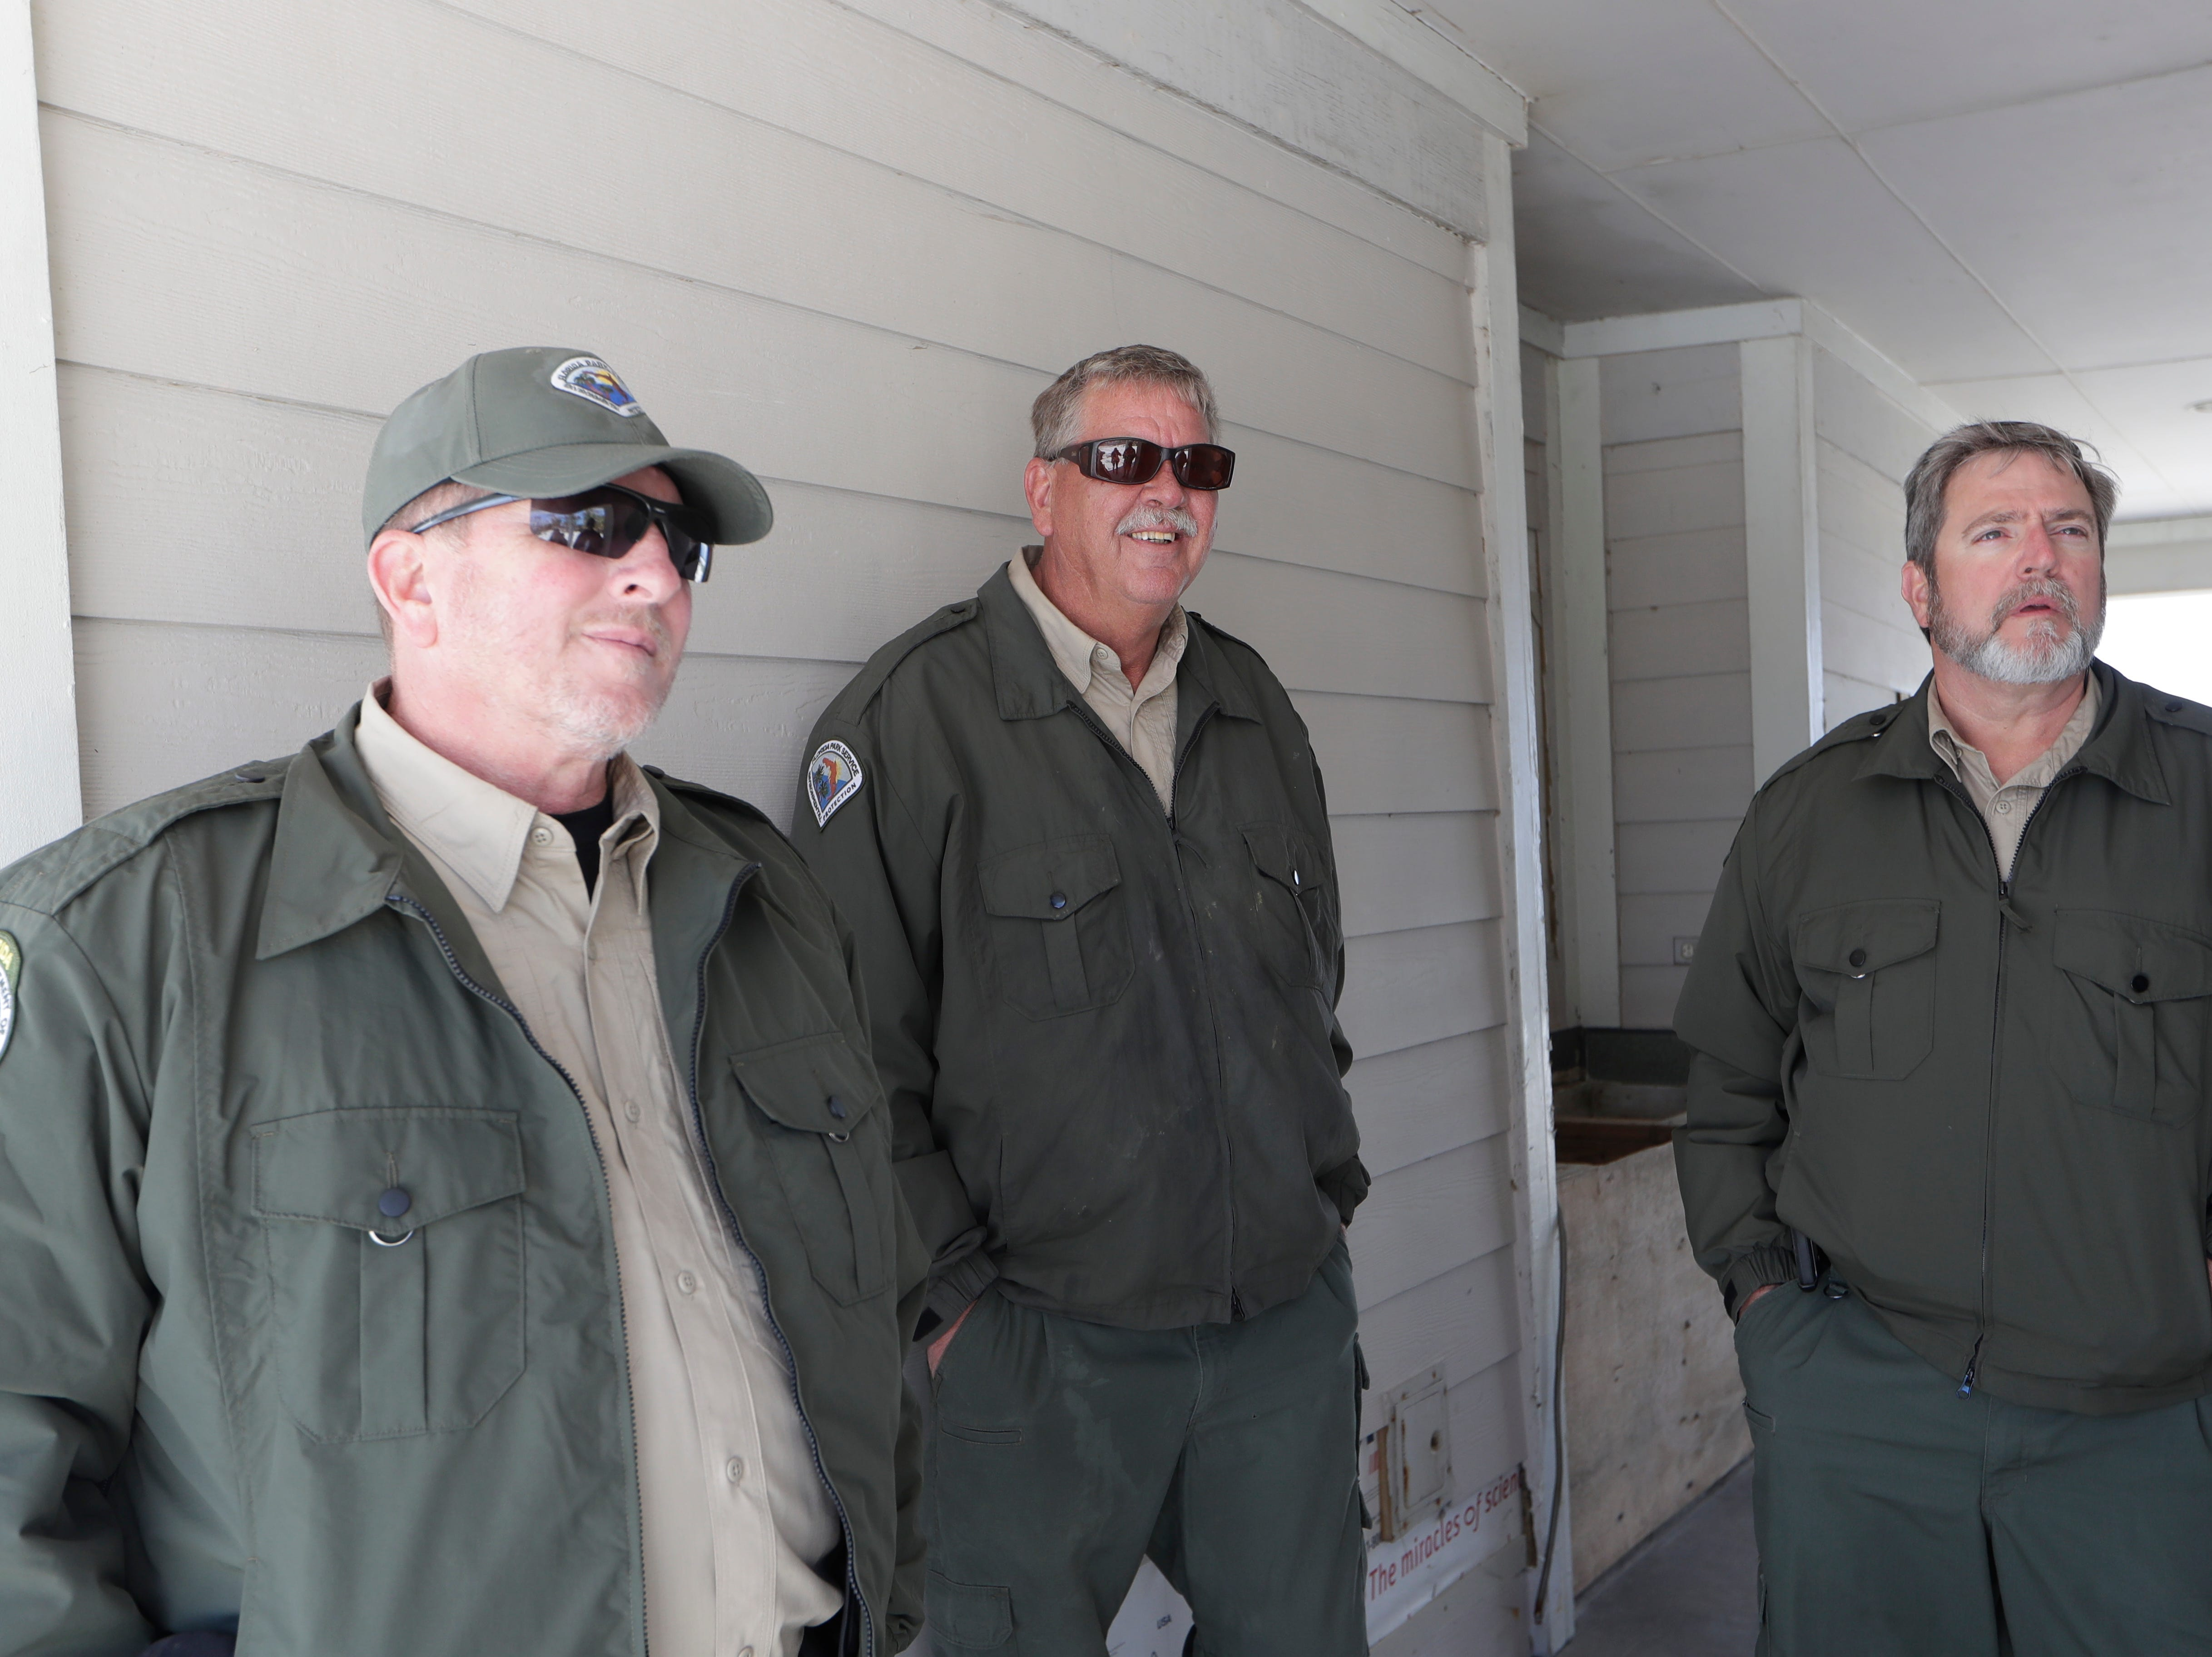 Chuck Hatcher, assistant director of field operations for the Florida Department of Environmental Protection, left, Mark Knapke, park manager for the Florida Department of Environmental Protection, and Warren Poplin, bureau chief for the Florida Department of Environmental Protection, discuss what they saw while walking the grounds of St. Joseph Peninsula State Park, Monday, Jan. 14, 2019. Hurricane Michael hit the panhandle Oct. 10, 2018, and left a mess of destruction behind.